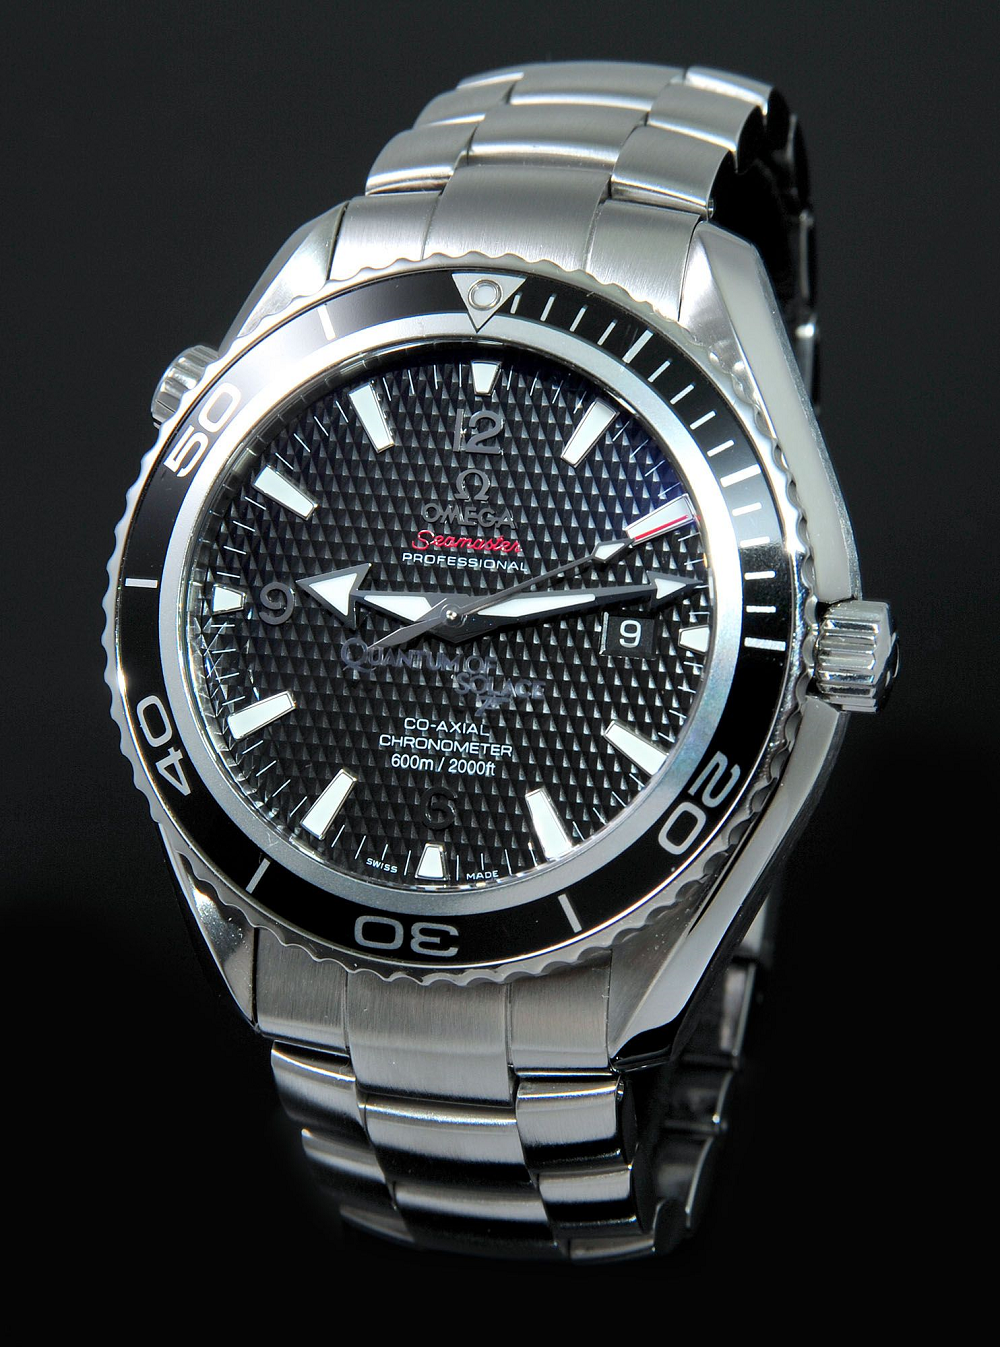 Đồng hồ Omega Seamaster Planet Ocean Quantum of Solace